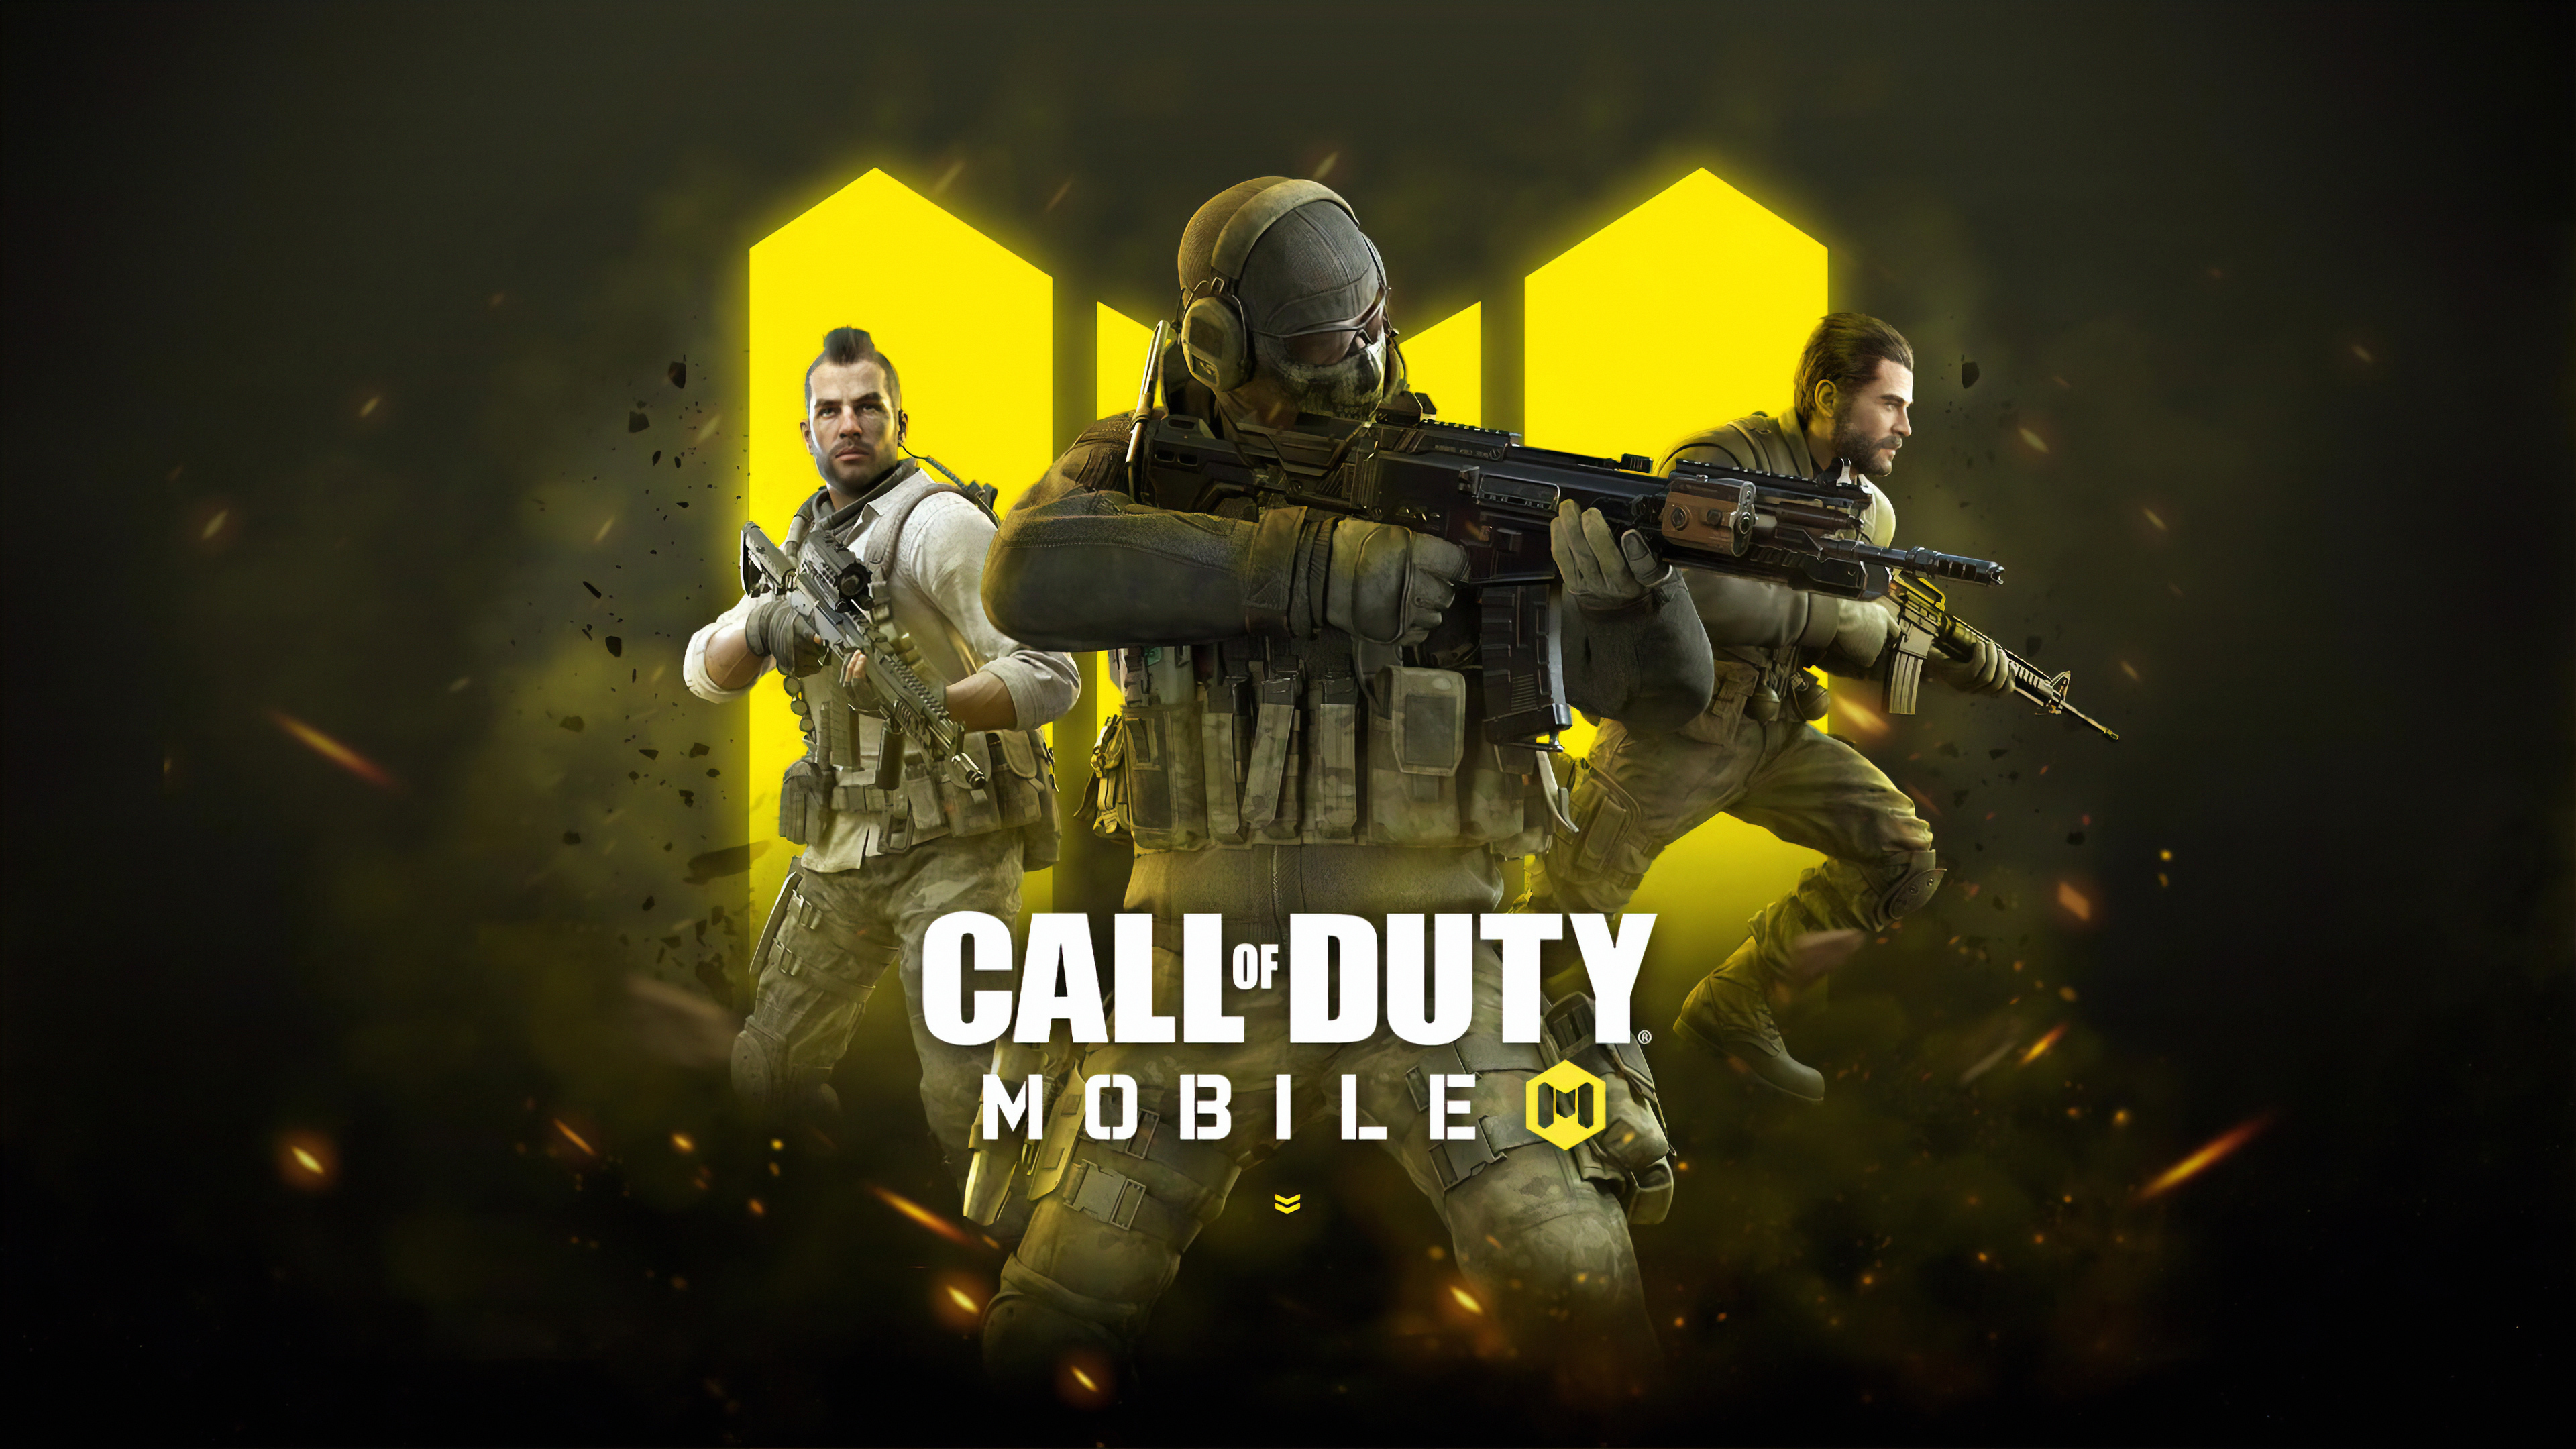 1920x1200 Call Of Duty Mobile 4k 2019 1080p Resolution Hd 4k